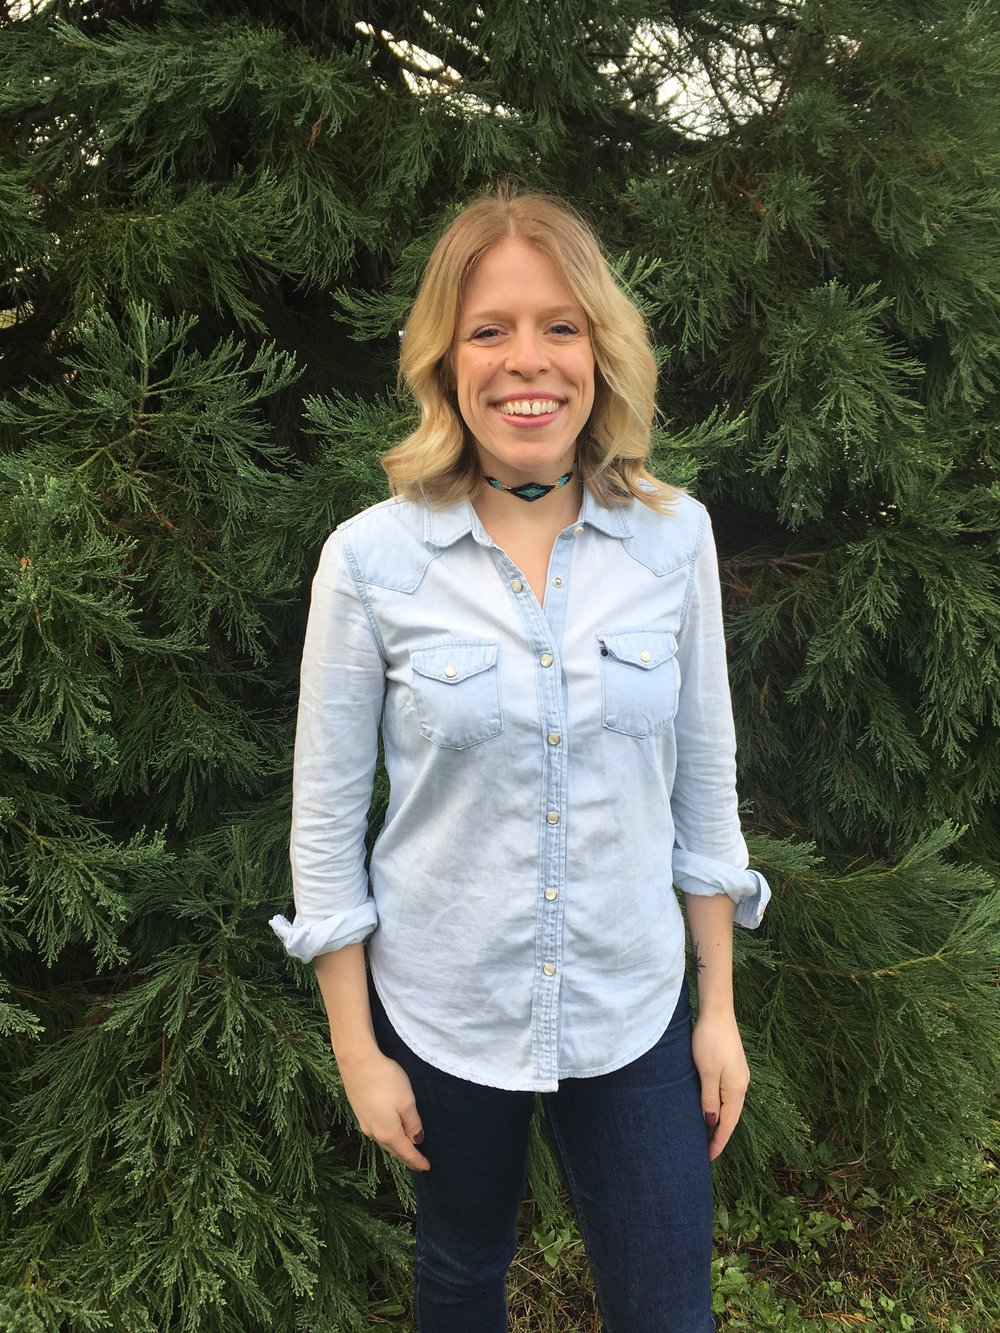 Zaleska Beaded Choker paired with GAP denim shirt and Guess Jeans